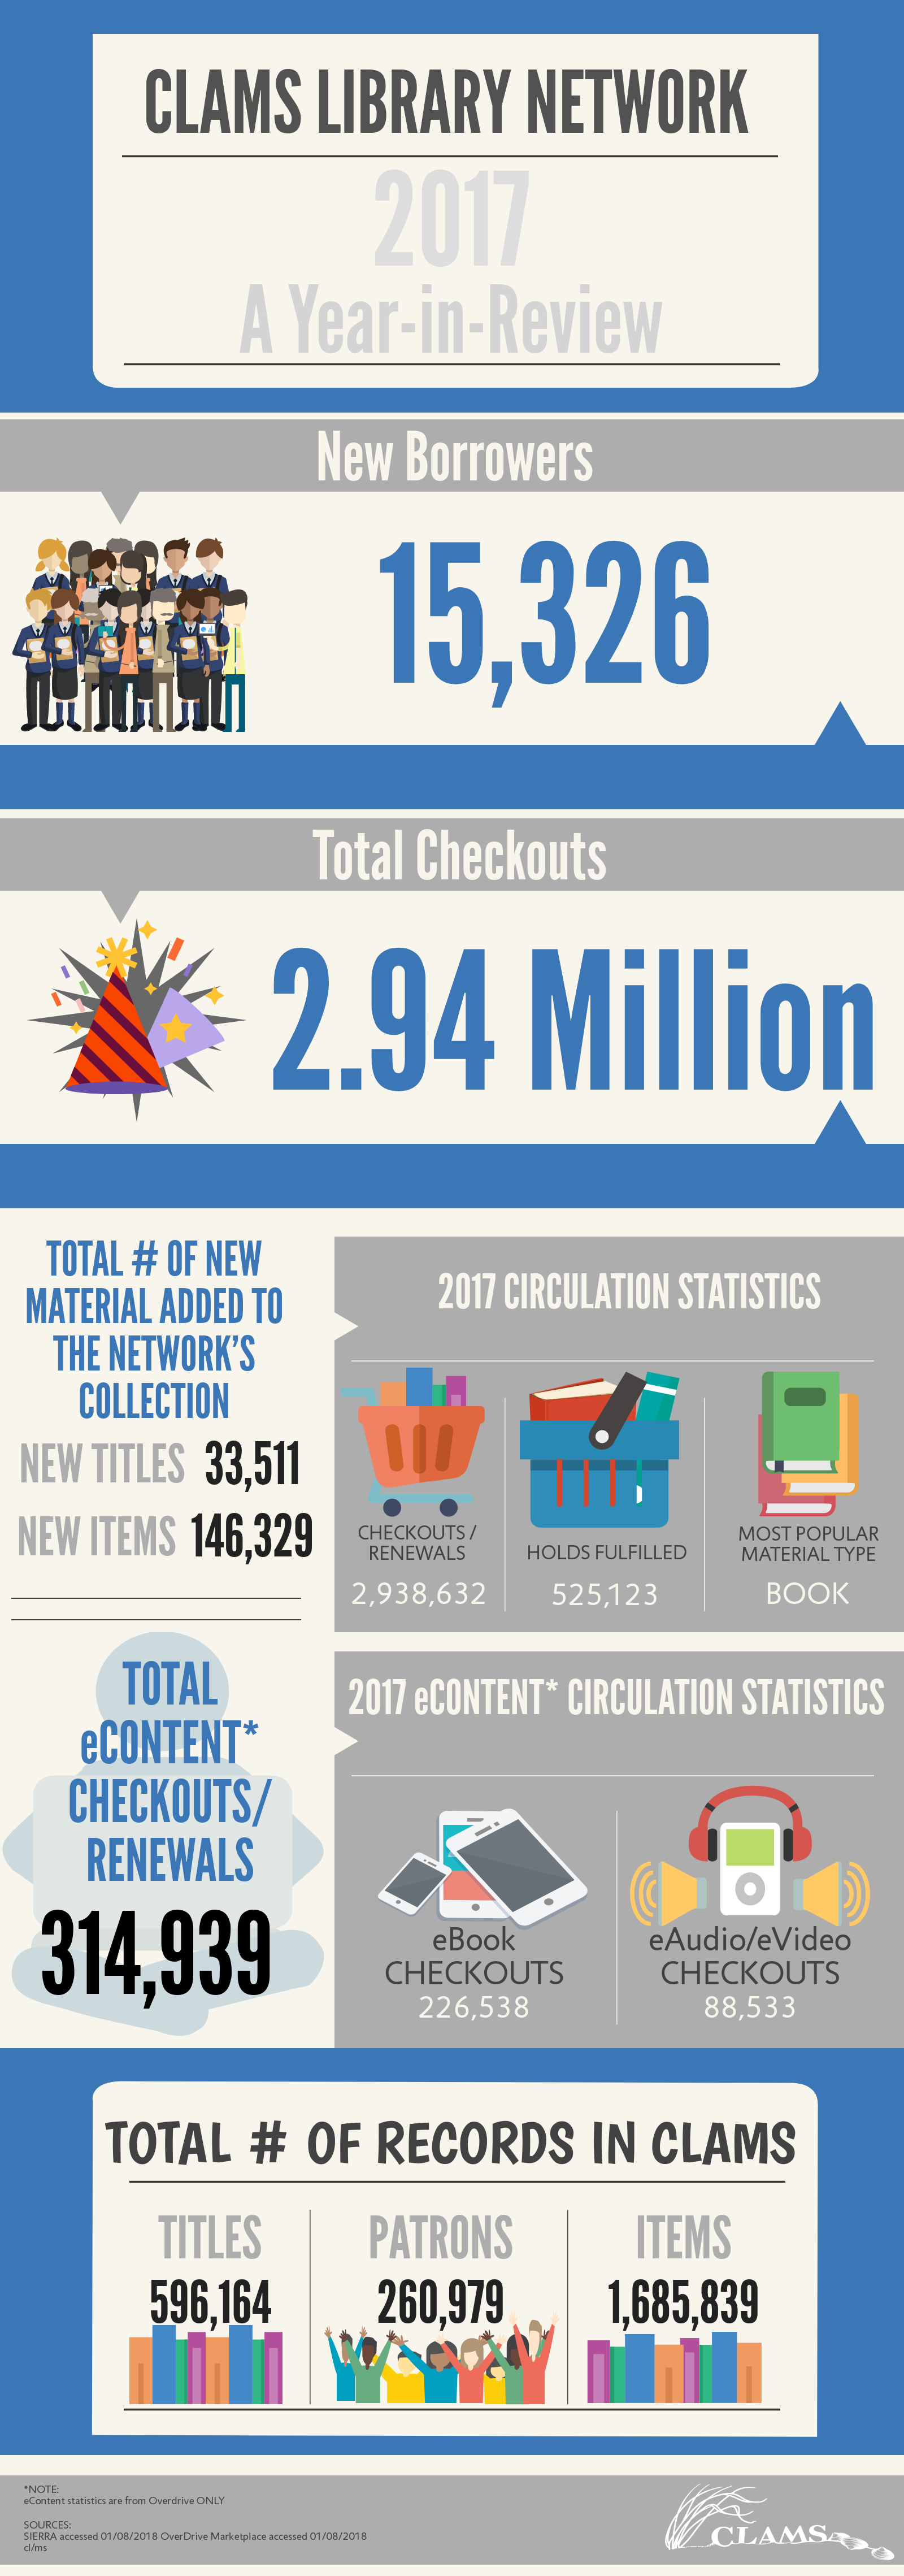 2017 A Year in Review (Circulation Statistics for calendar year 2017). 15,326 new borrowers. 2.94 million total checkouts. Total number of material added to the network's collection in 2017: 33,511 new titles and 146,329 new items.  2,938,632 checkouts and renewals. 525,123 holds fulfilled. Most popular material type last year was a book. Total eContent (note: OverDrive stats only) checkouts last year was 314,939. 226,538 eBook checkouts and 88,533 eAudio or eVideo checkouts. Total number of records in CLAMS: 596,164 titles, 260,979 patrons, and 1,685,839 items. Sources: Sierra and OverDrive Marketplace accessed January 8, 2018.